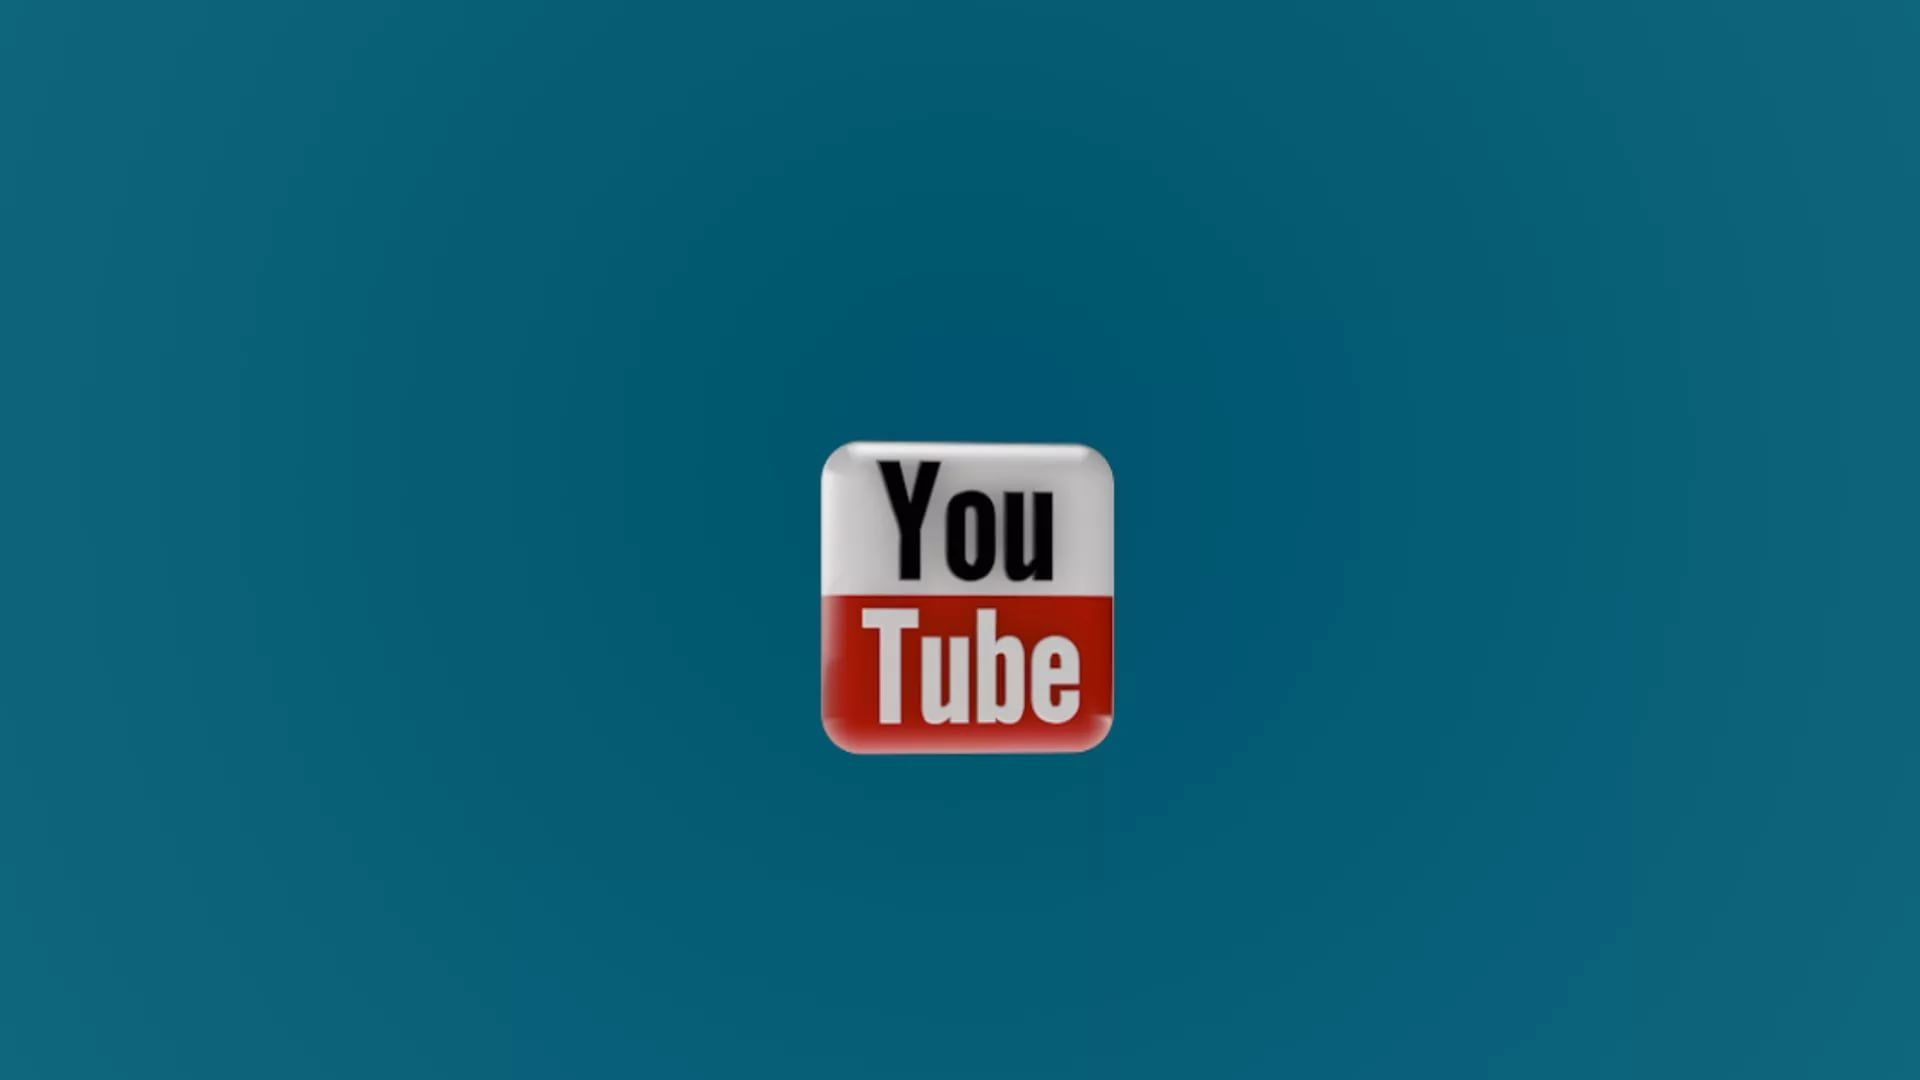 Youtube download wallpaper image